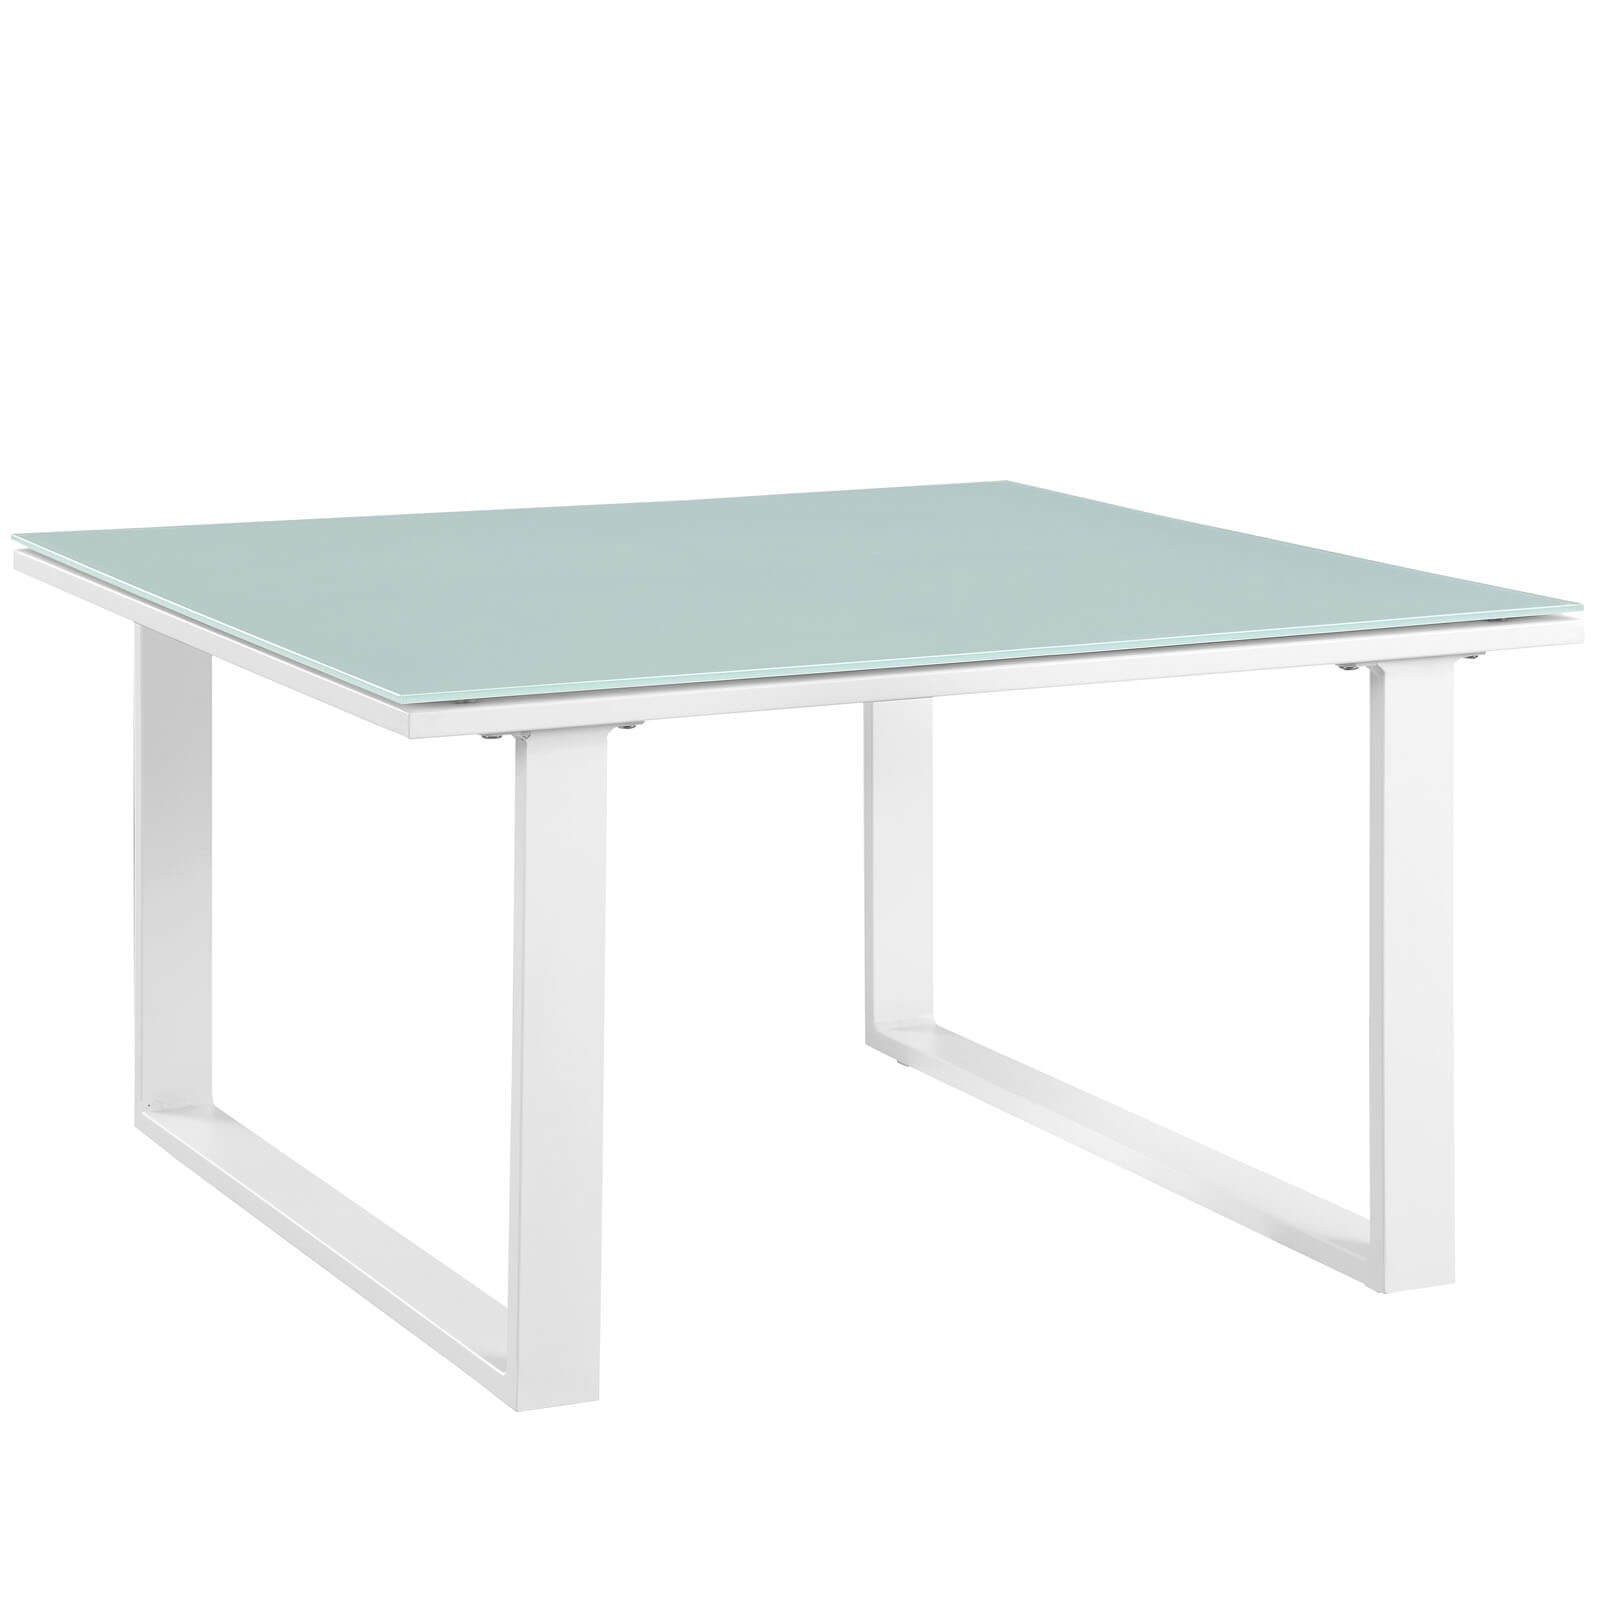 Fortuna Outdoor Patio Side Table White By Modway Furniture